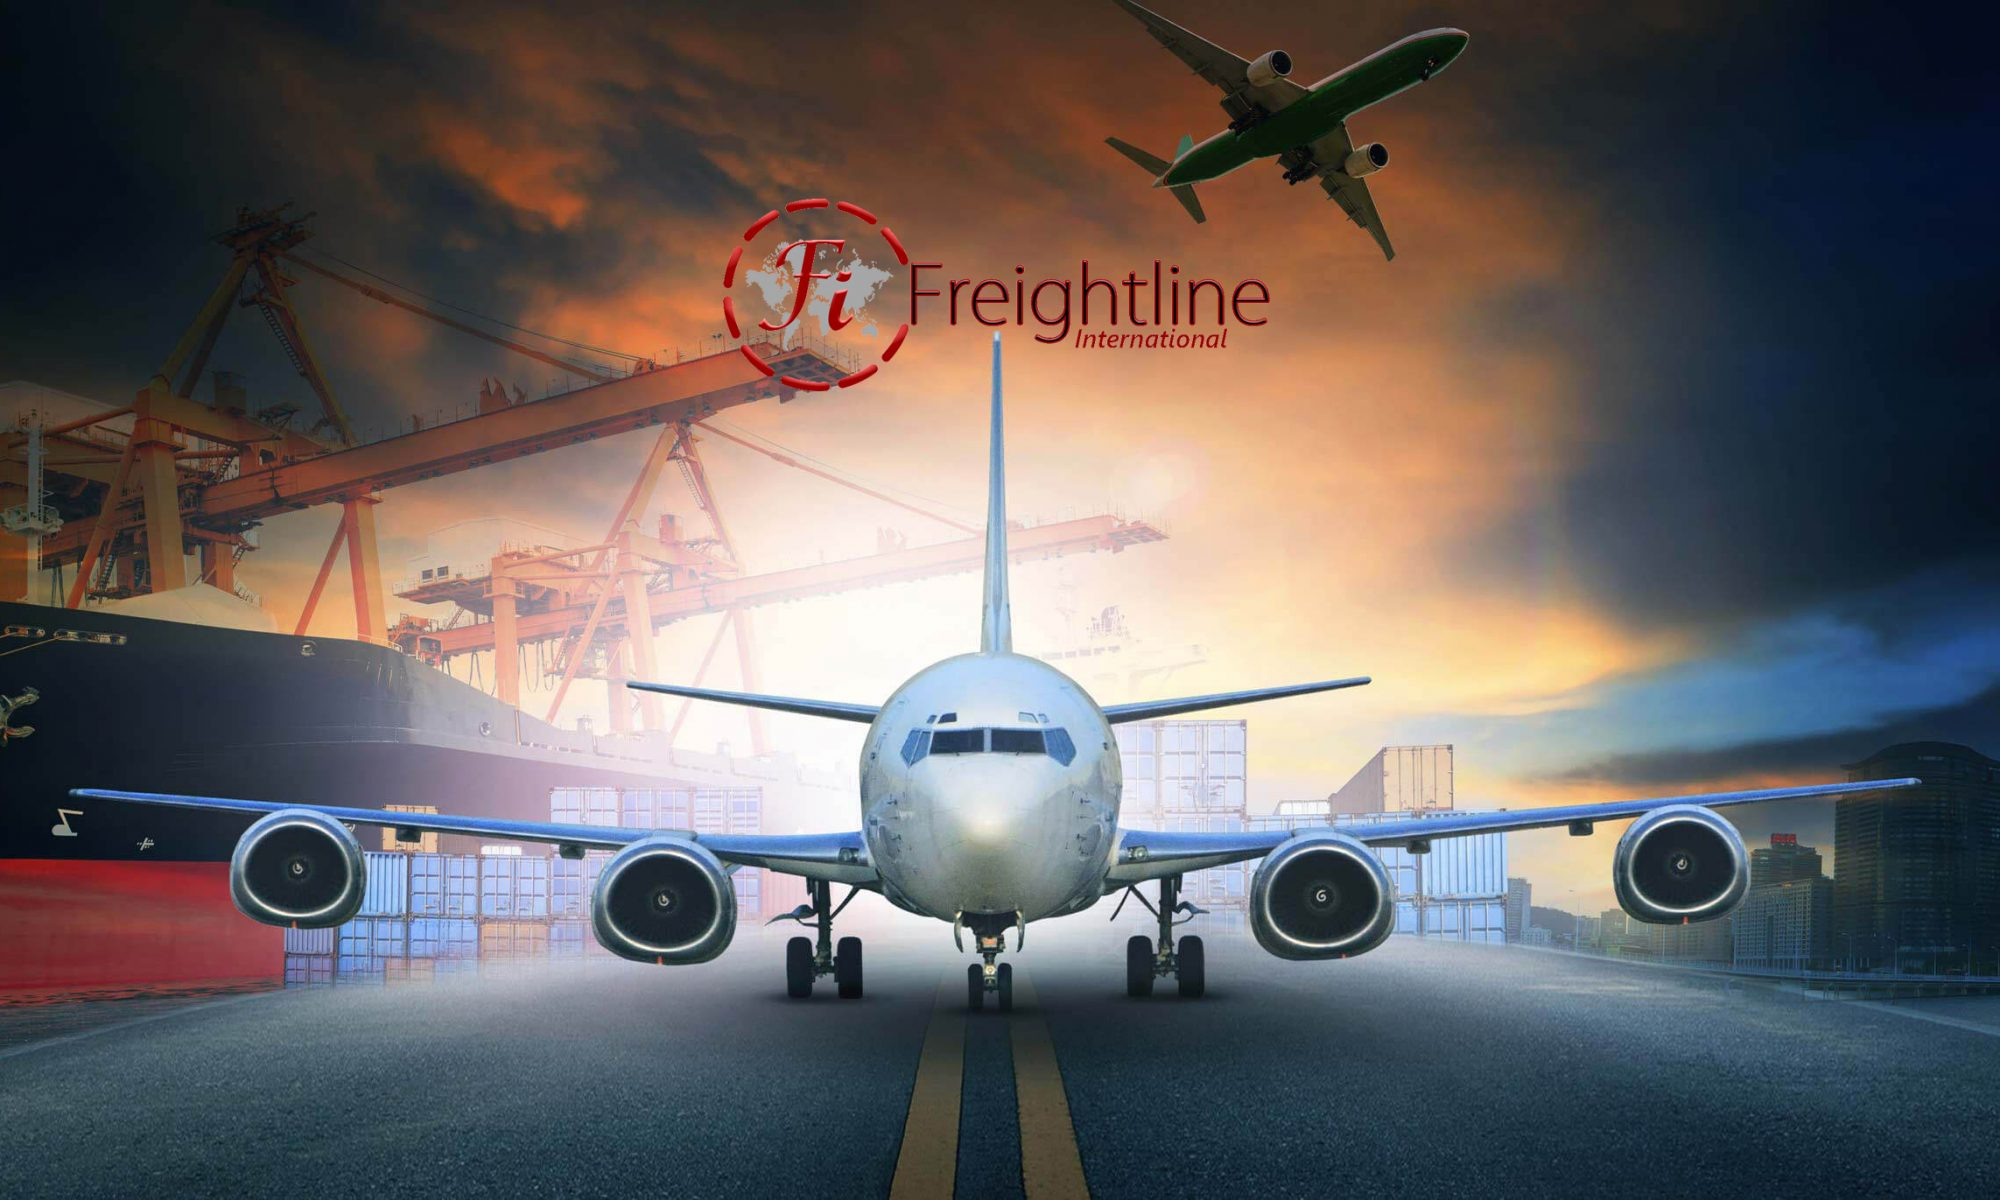 Freightline International Ltd